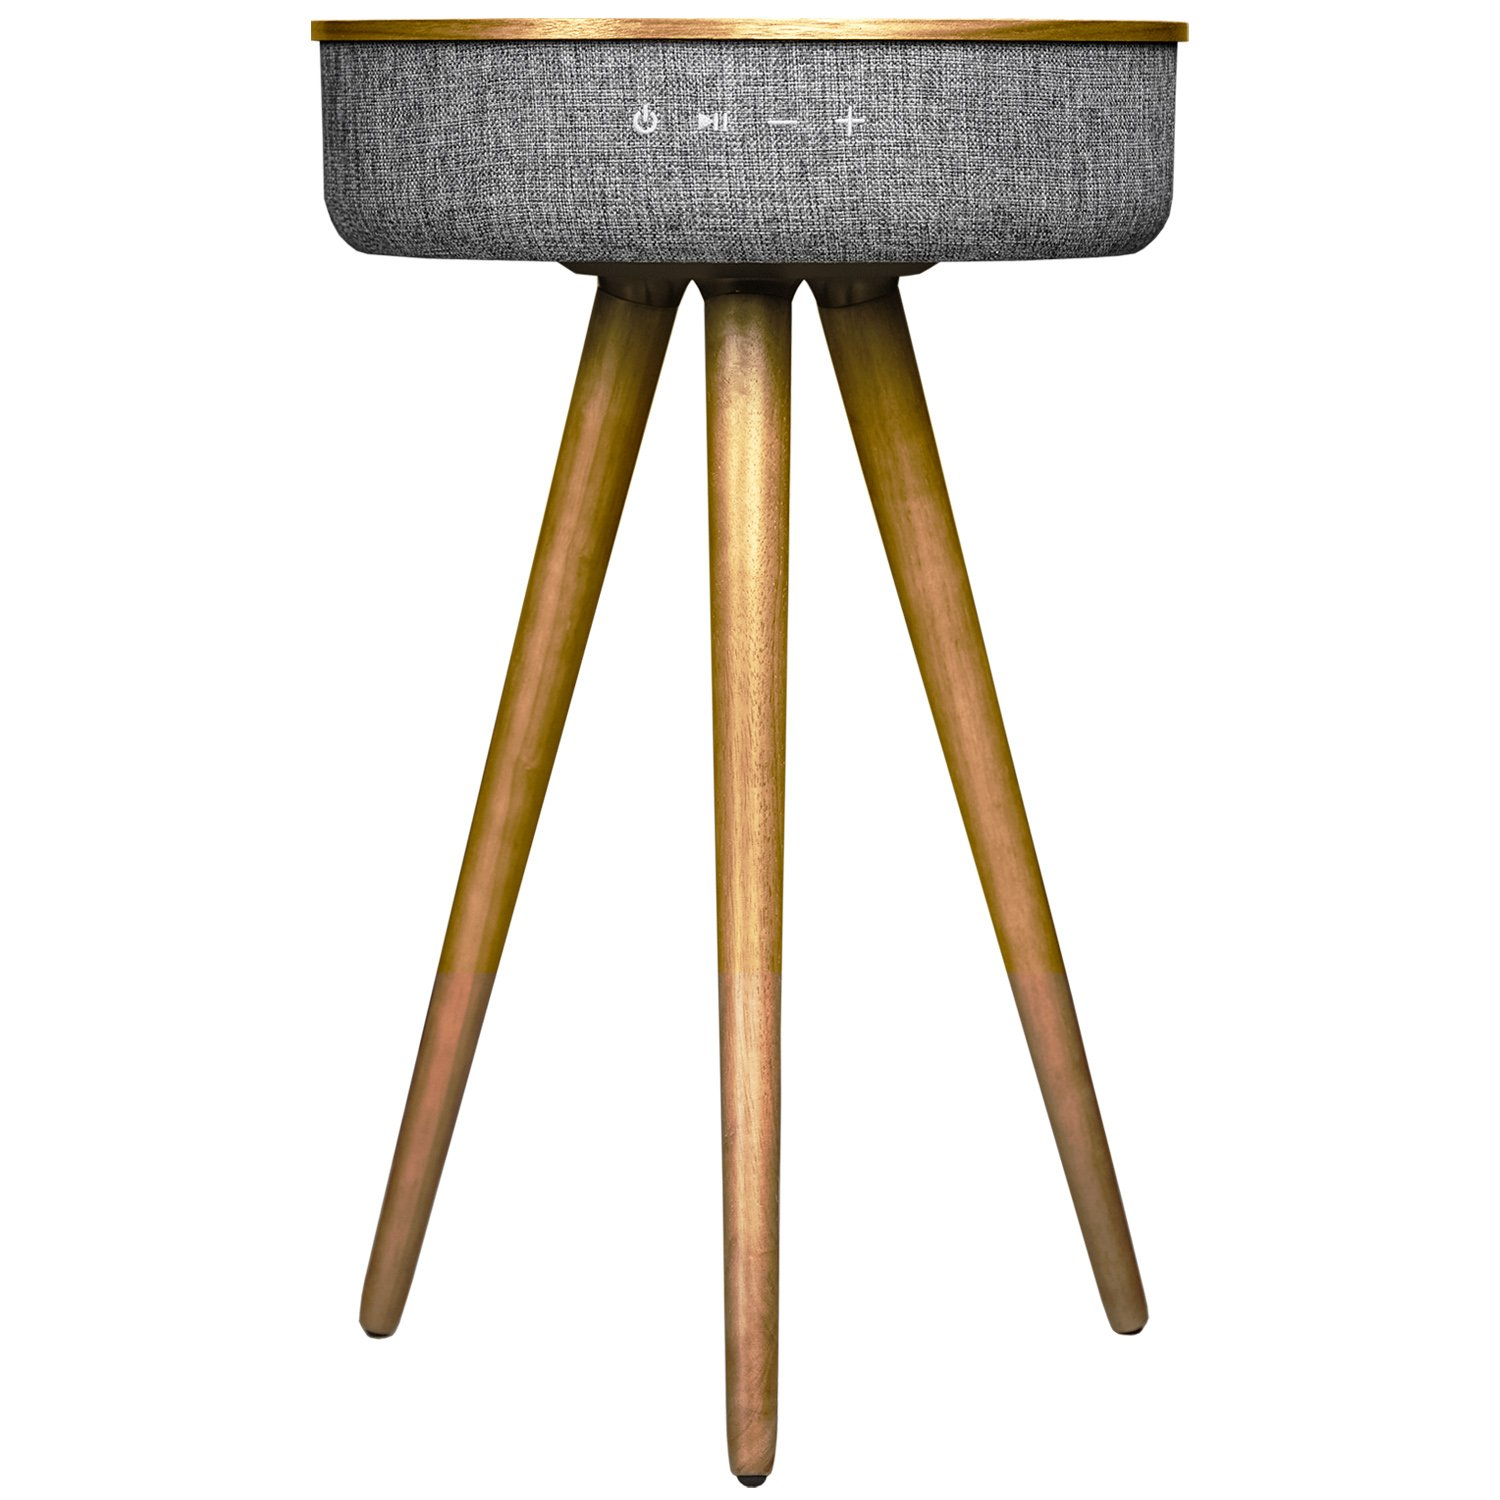 Sierra modern home studio smart table with built in 360 bluetooth speaker wireless qi charger ash wood night stand modern functional coffee table